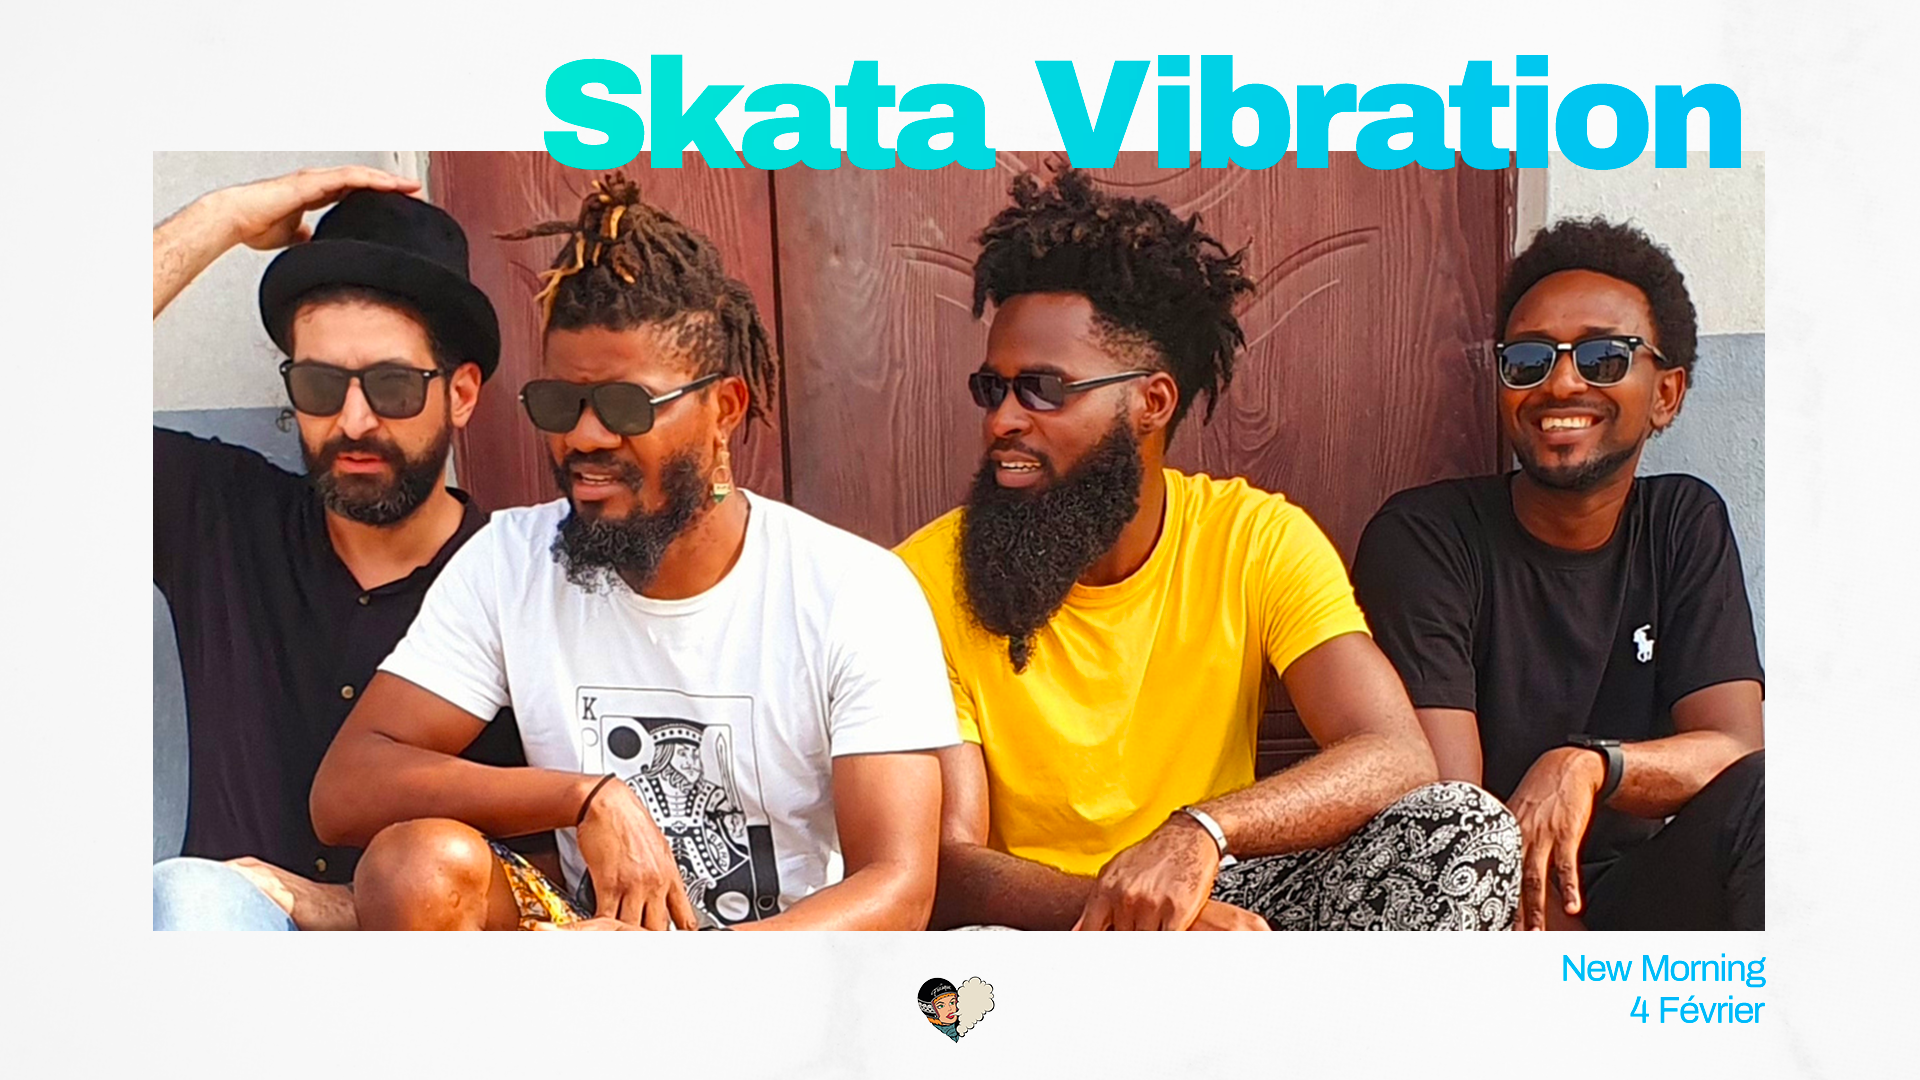 Skata Vibration au New Morning